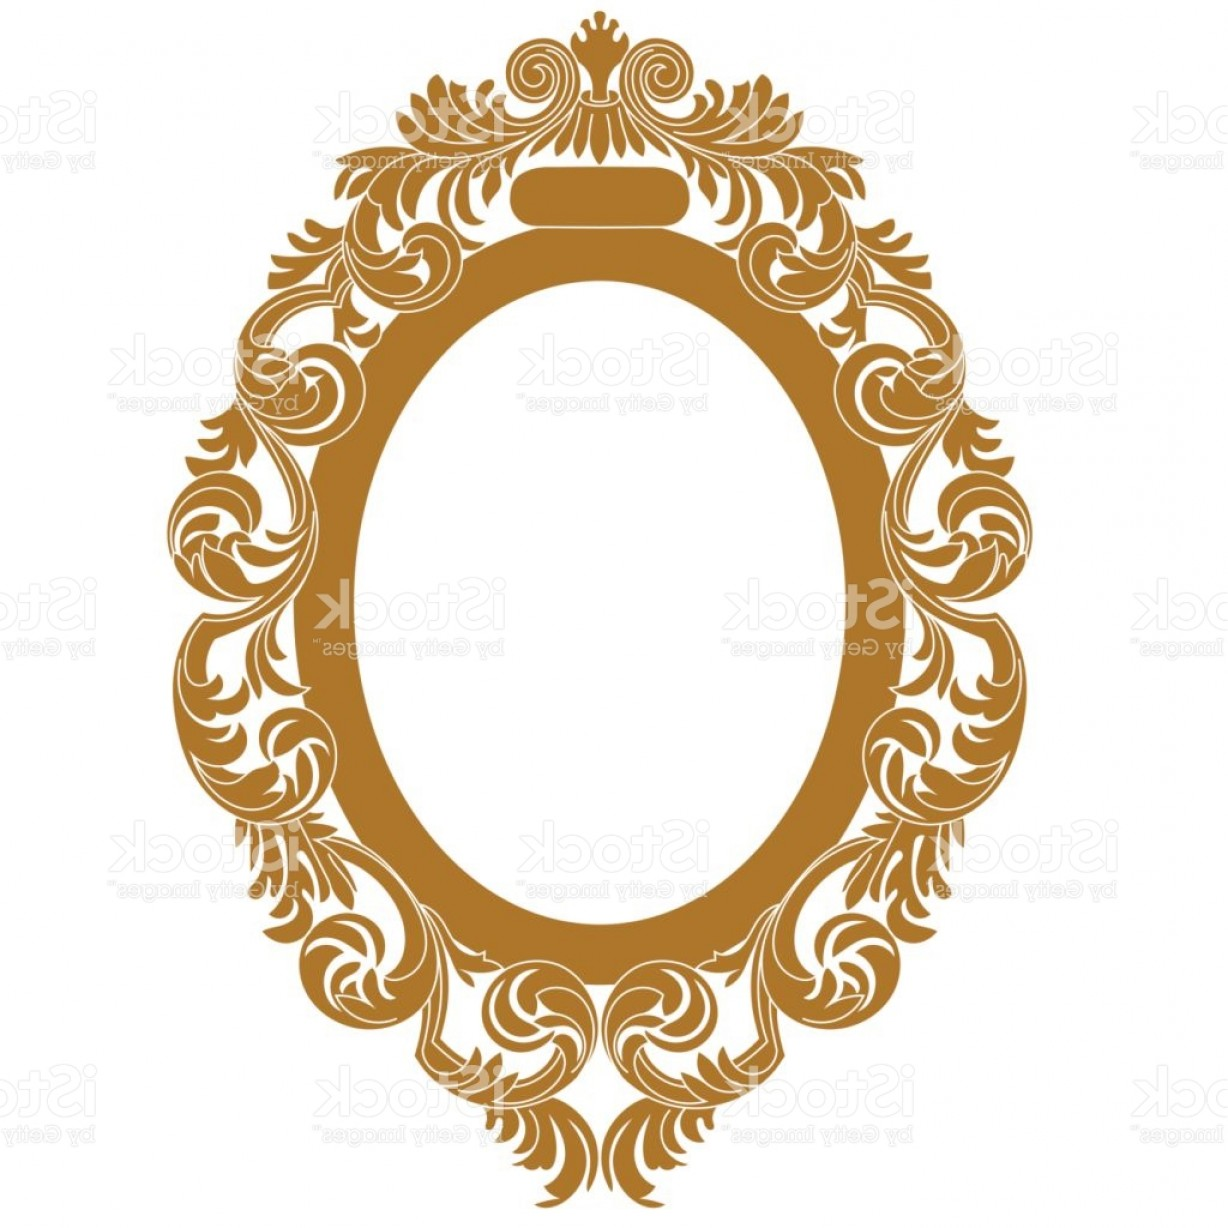 Filigree Oval Frame Vector: Golden Oval Vintage Border Frame Engraving With Retro Ornament Pattern In Antique Gm